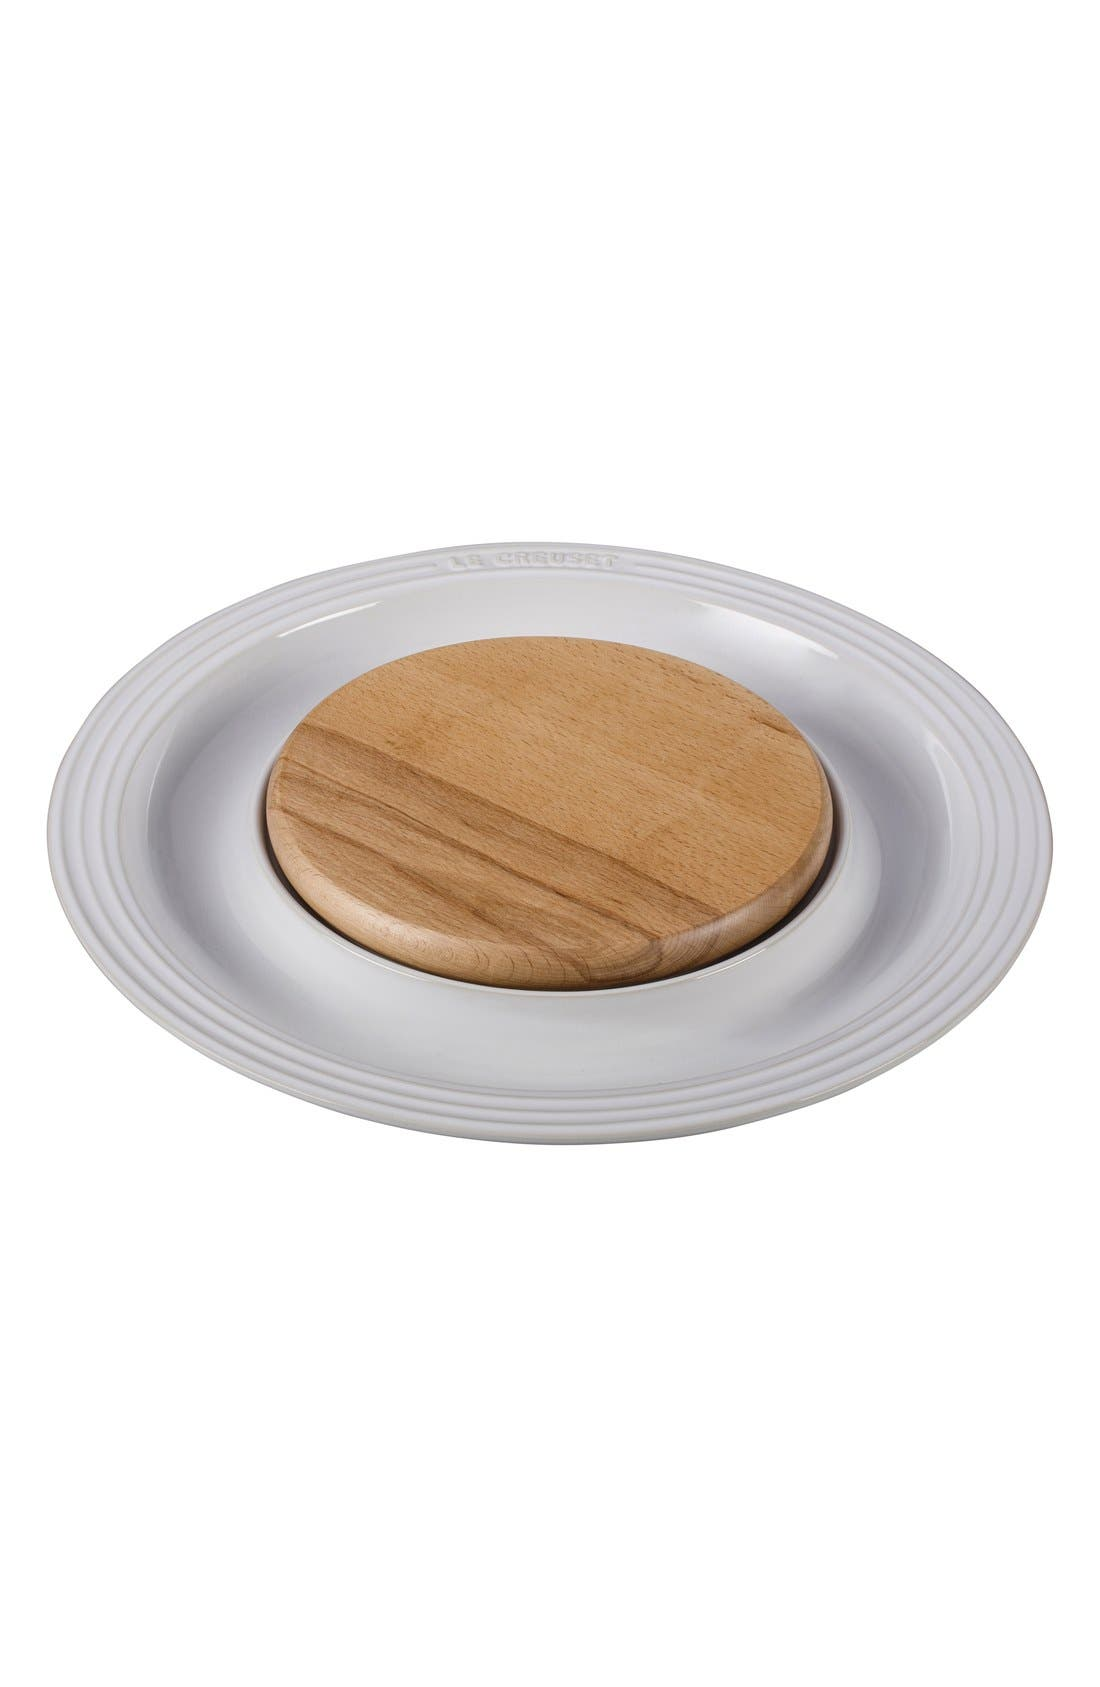 Round Platter with Cutting Board,                             Main thumbnail 1, color,                             100